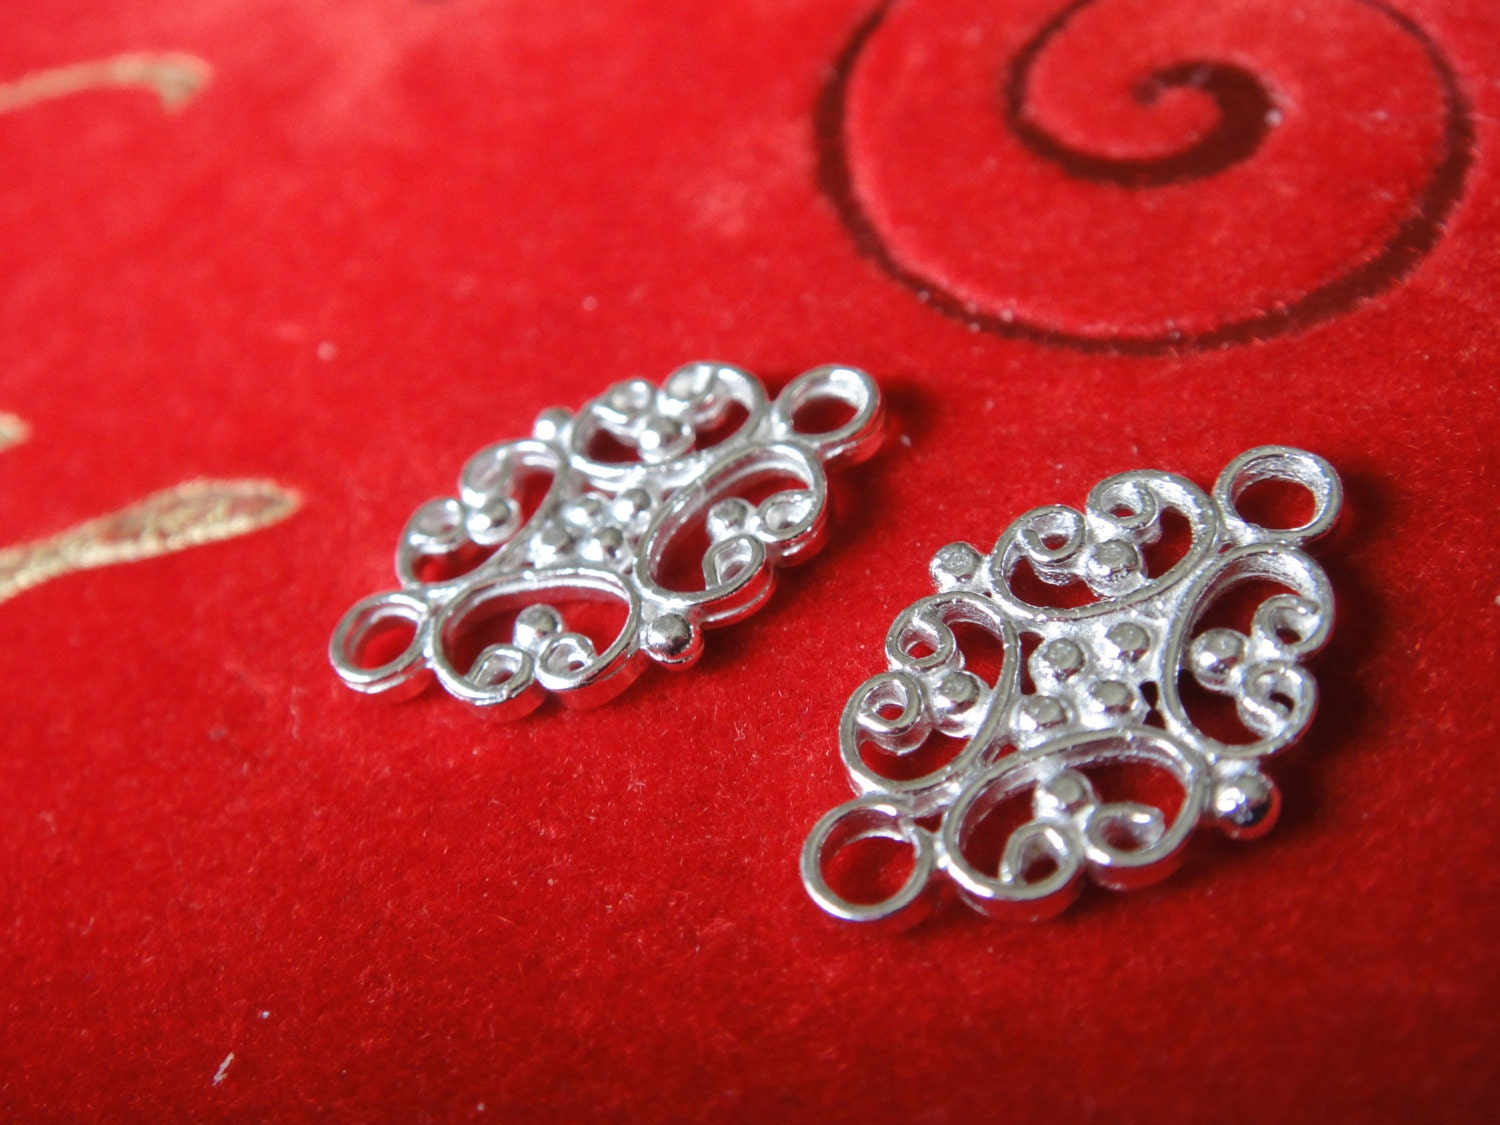 2 Pc 925 Sterling Silver Flower Spacer Connector And Link